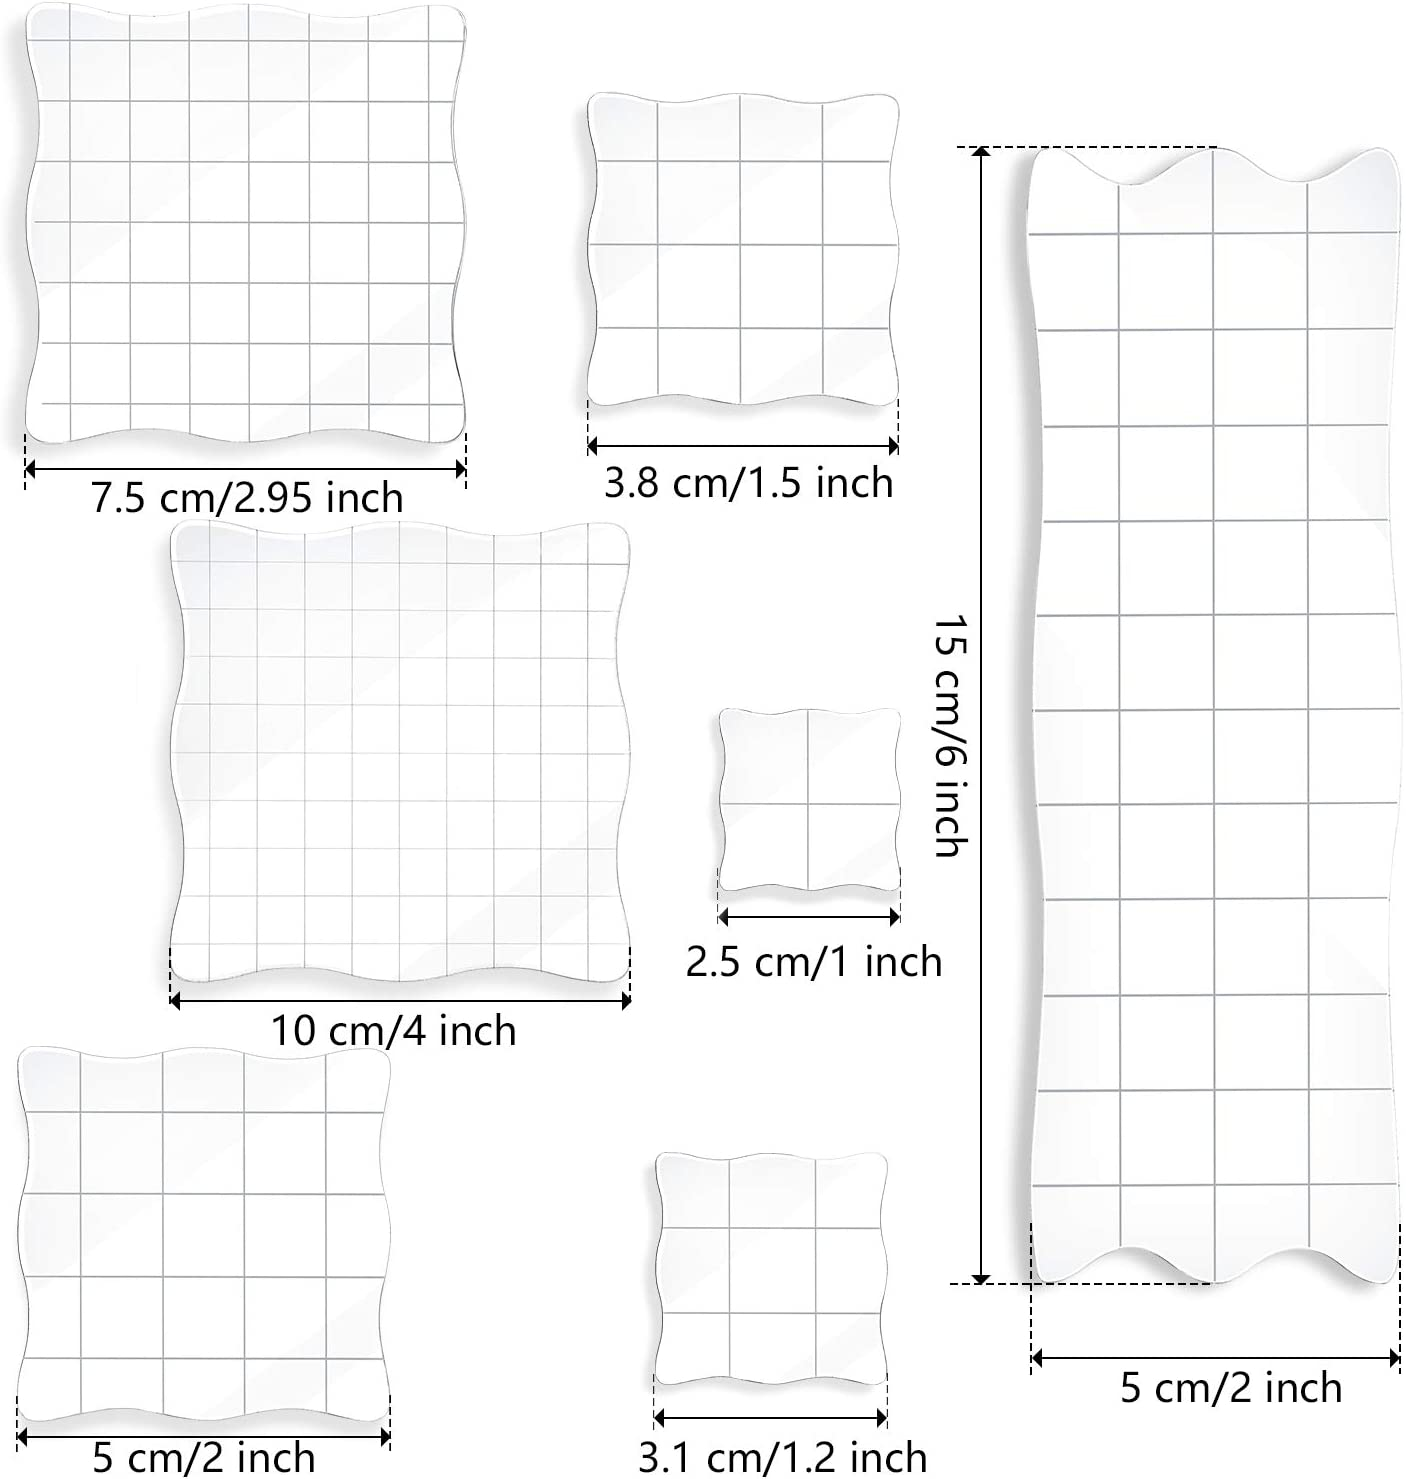 Decorative Stamp Blocks for Scrapbooking Crafts Making 7 Pieces Stamp Blocks Acrylic Clear Stamping Blocks Tools with Grid and Grip DIY Crafts Ornaments